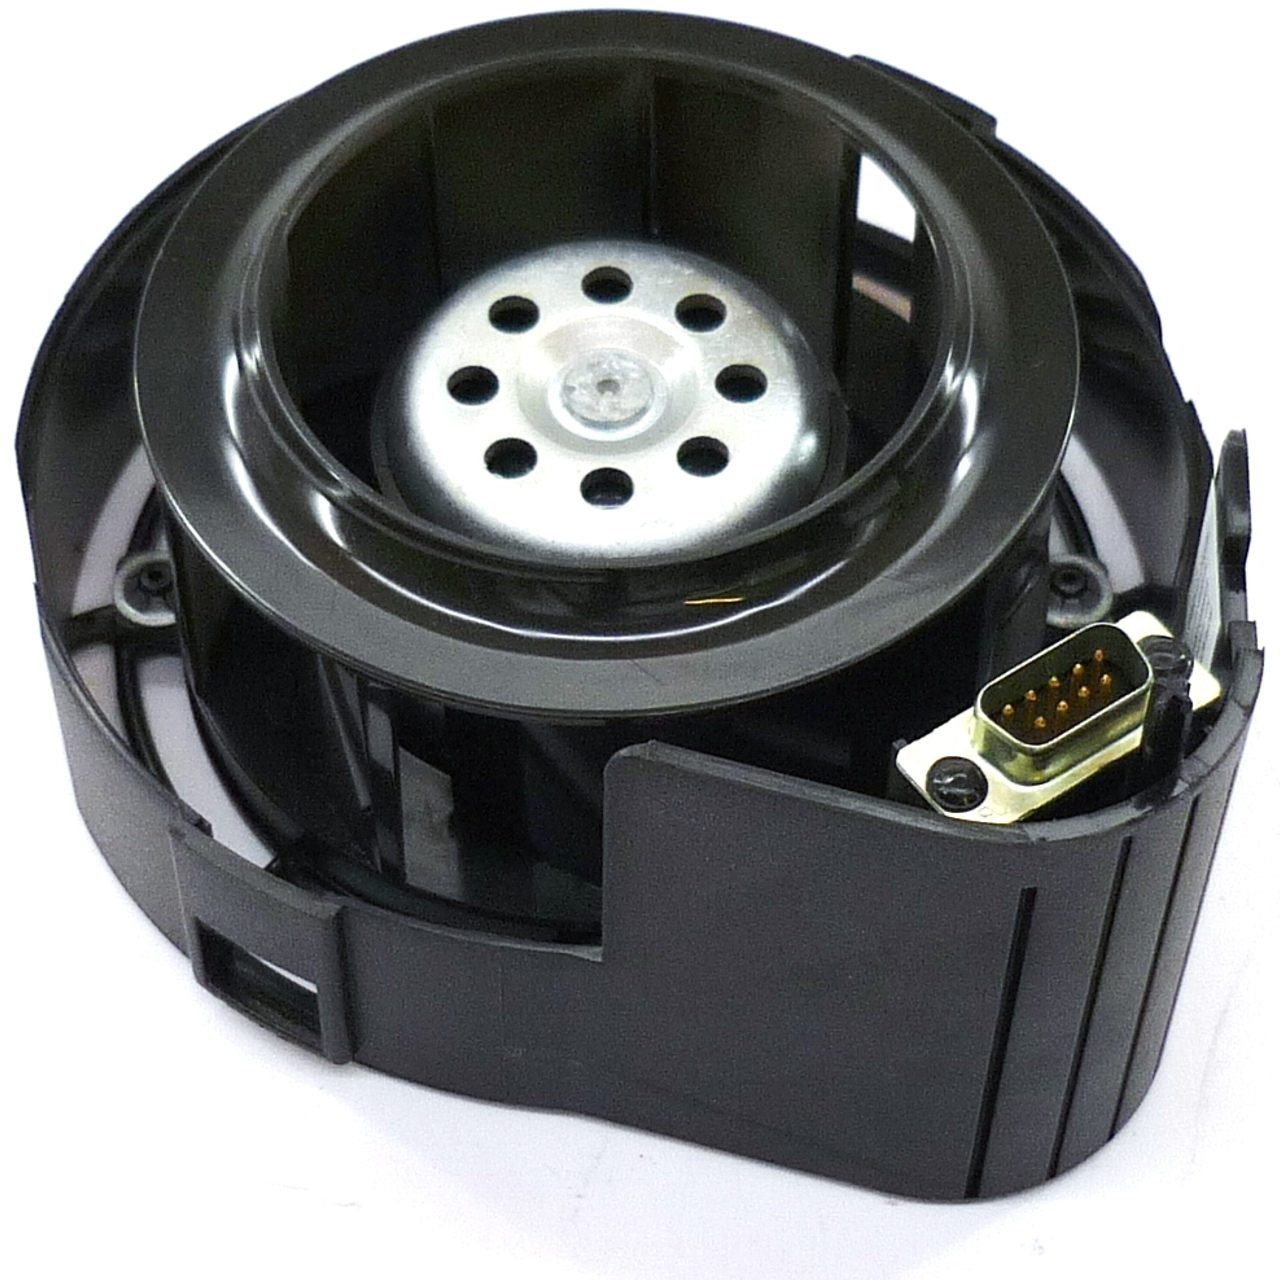 123482-005 Fan assembly - Includes fan, connector, cable, and housing